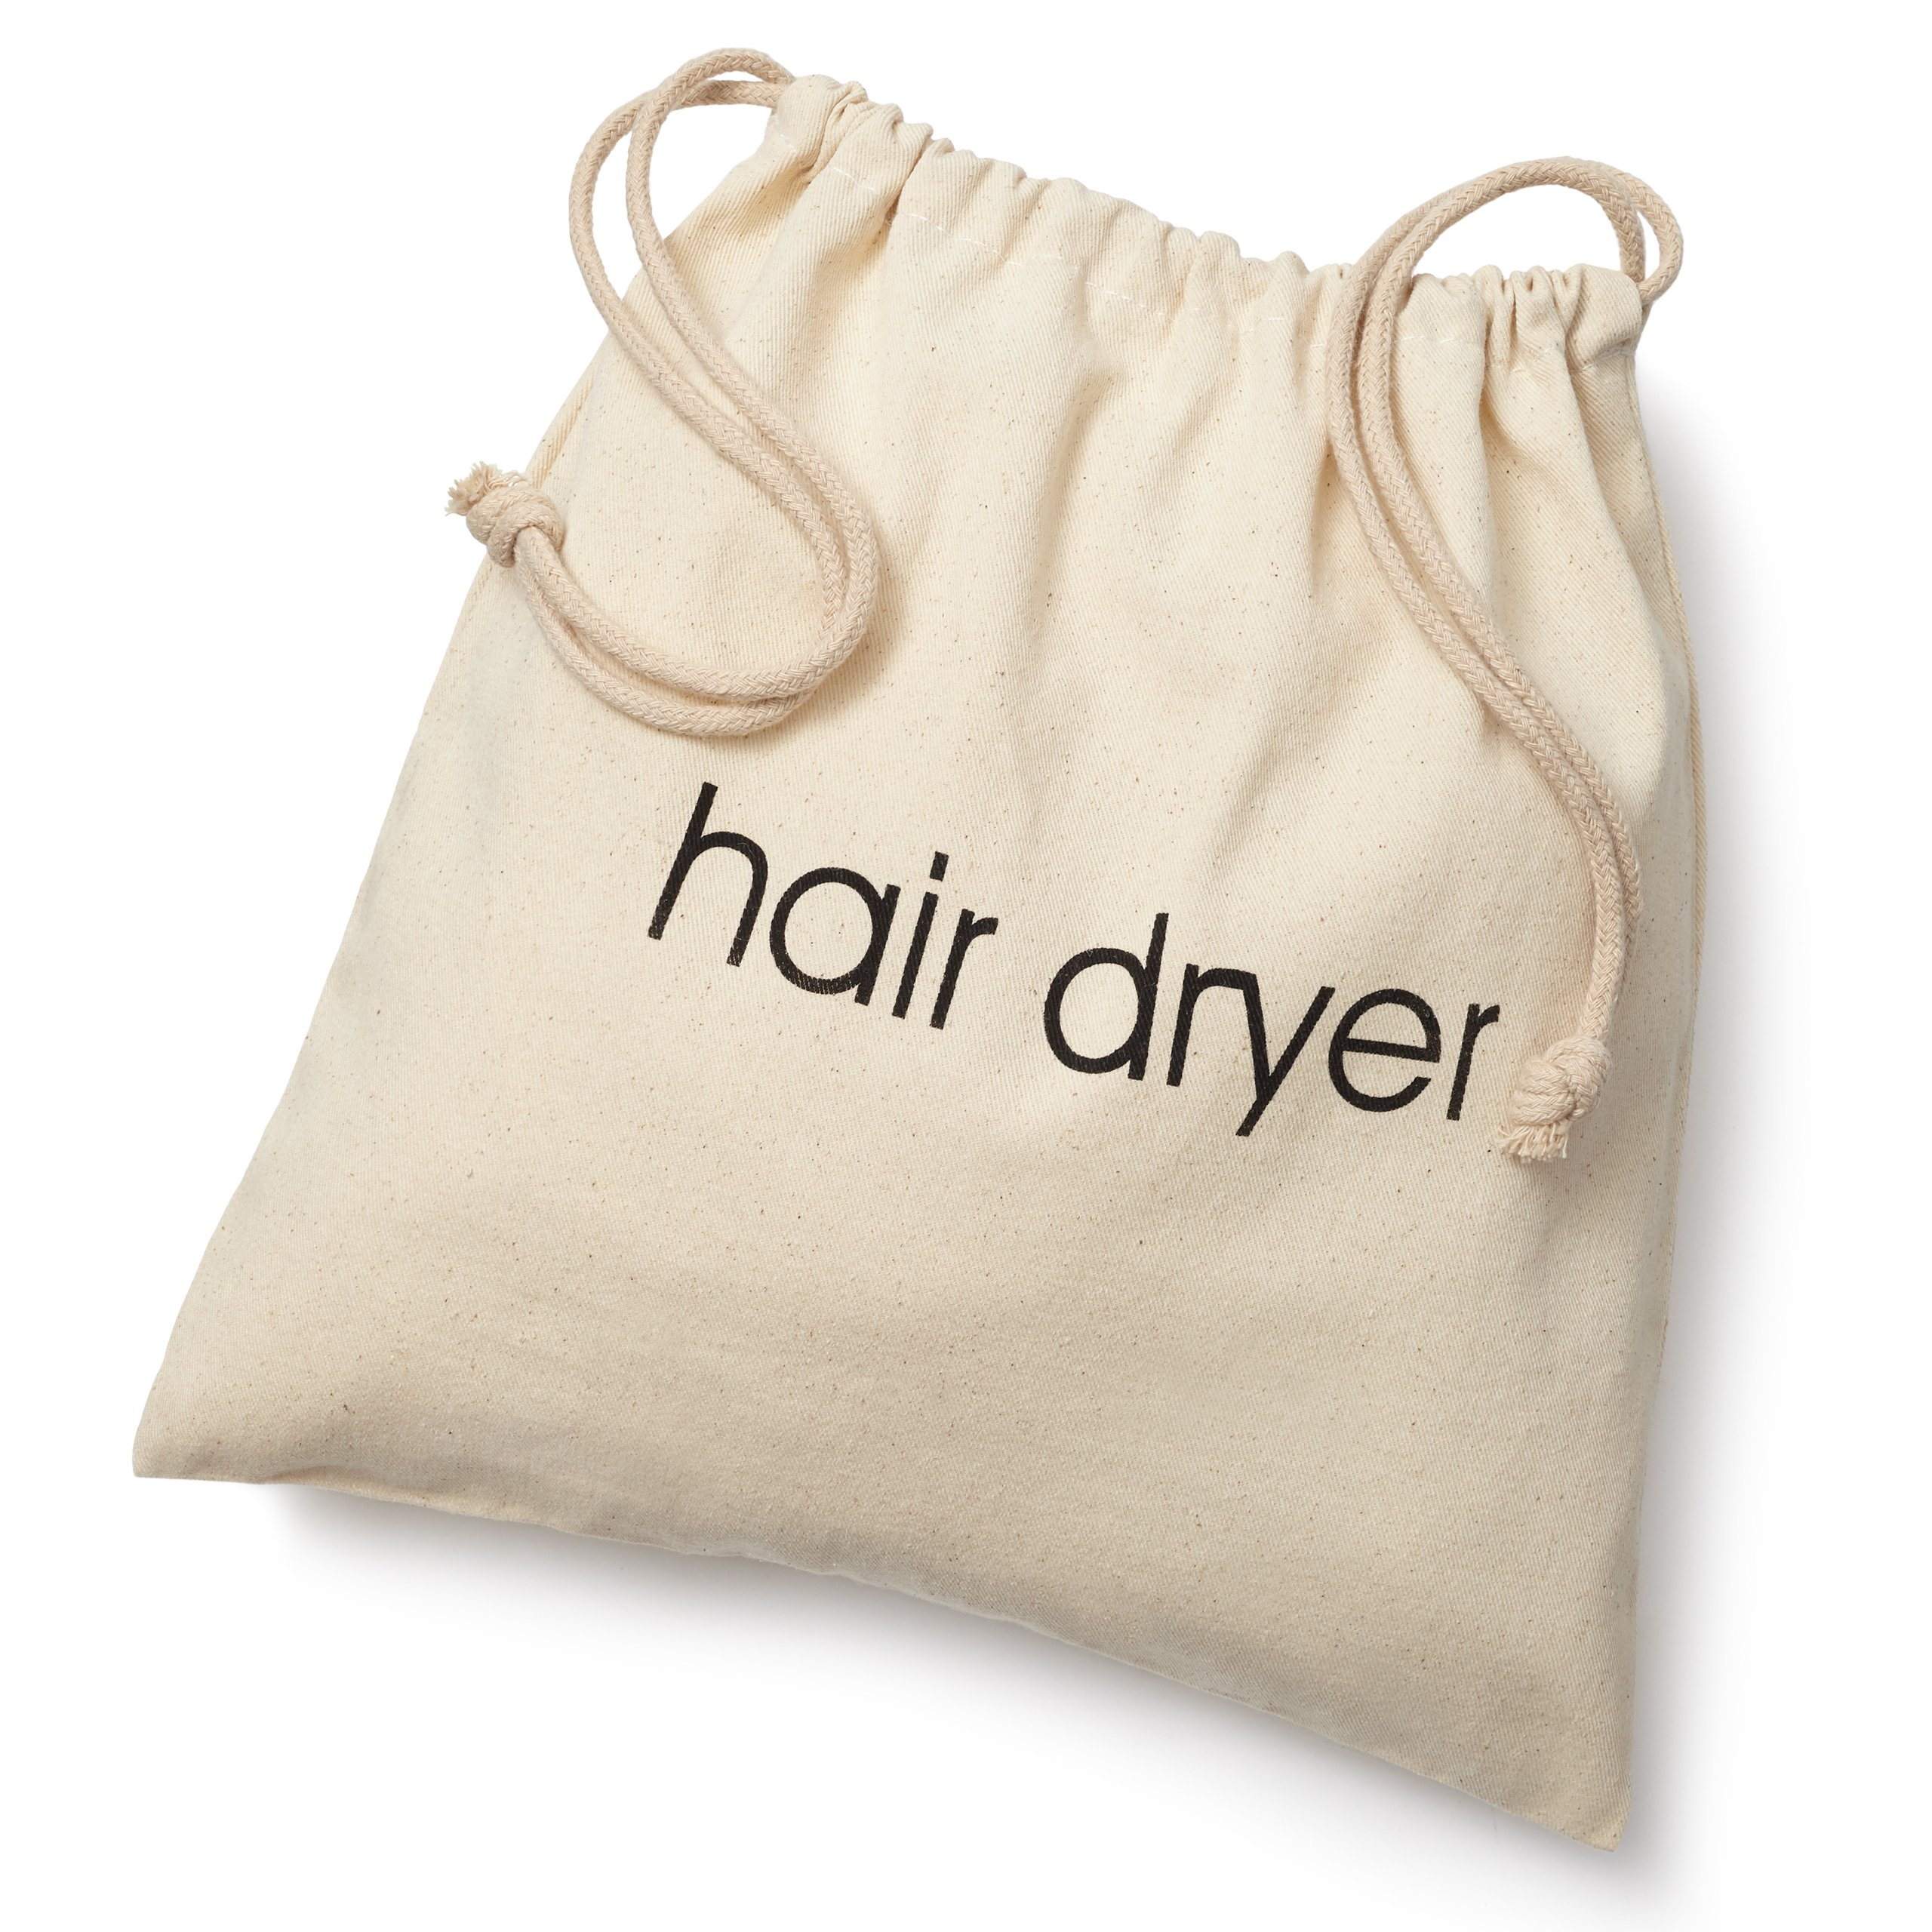 FabbPro Hair Dryer Bags